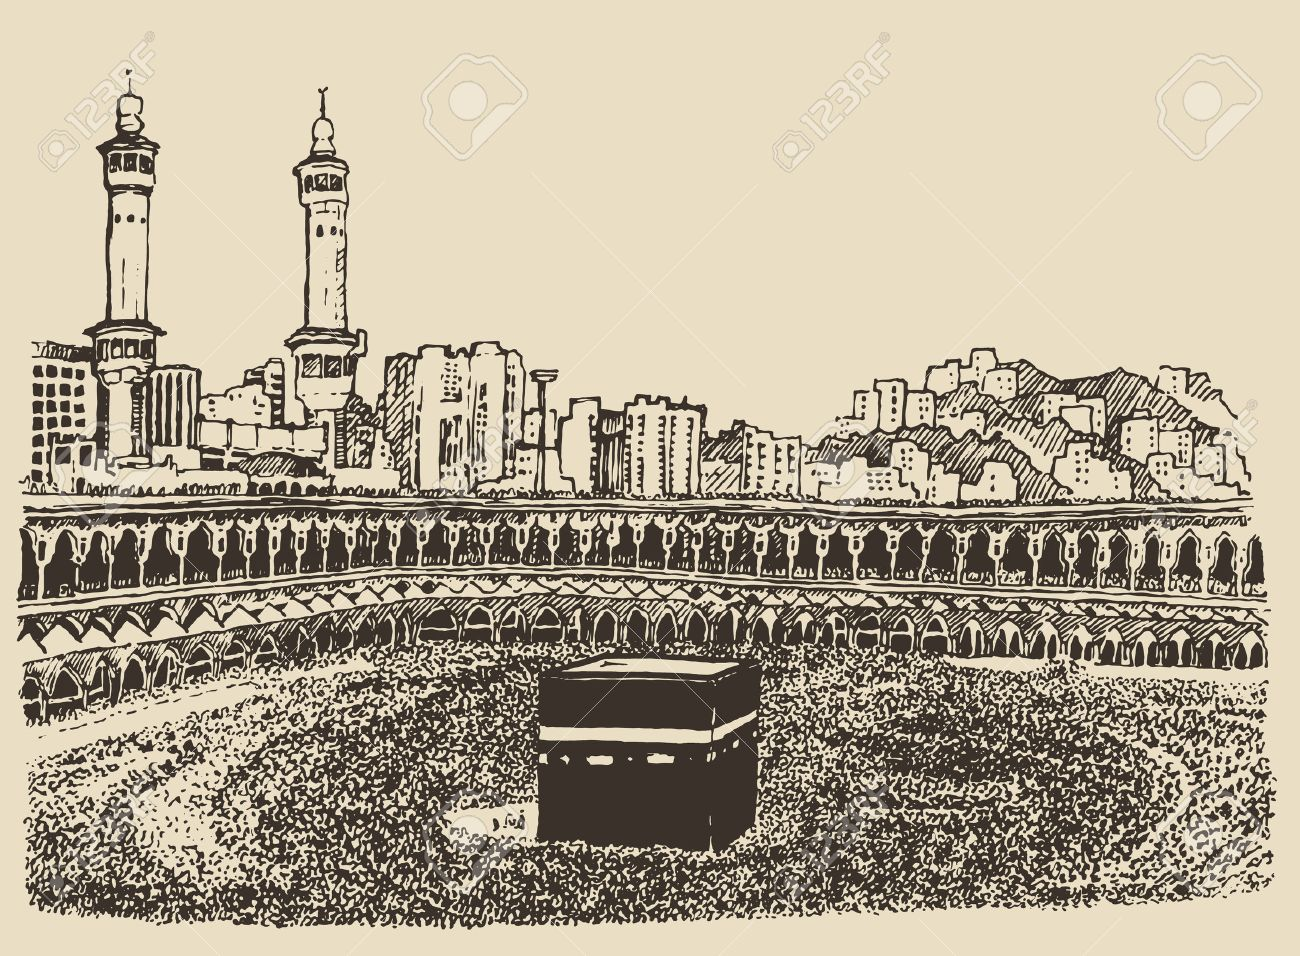 Holy Kaaba in Mecca Saudi Arabia with muslim people vintage engraved illustration hand drawn sketch - 42280756